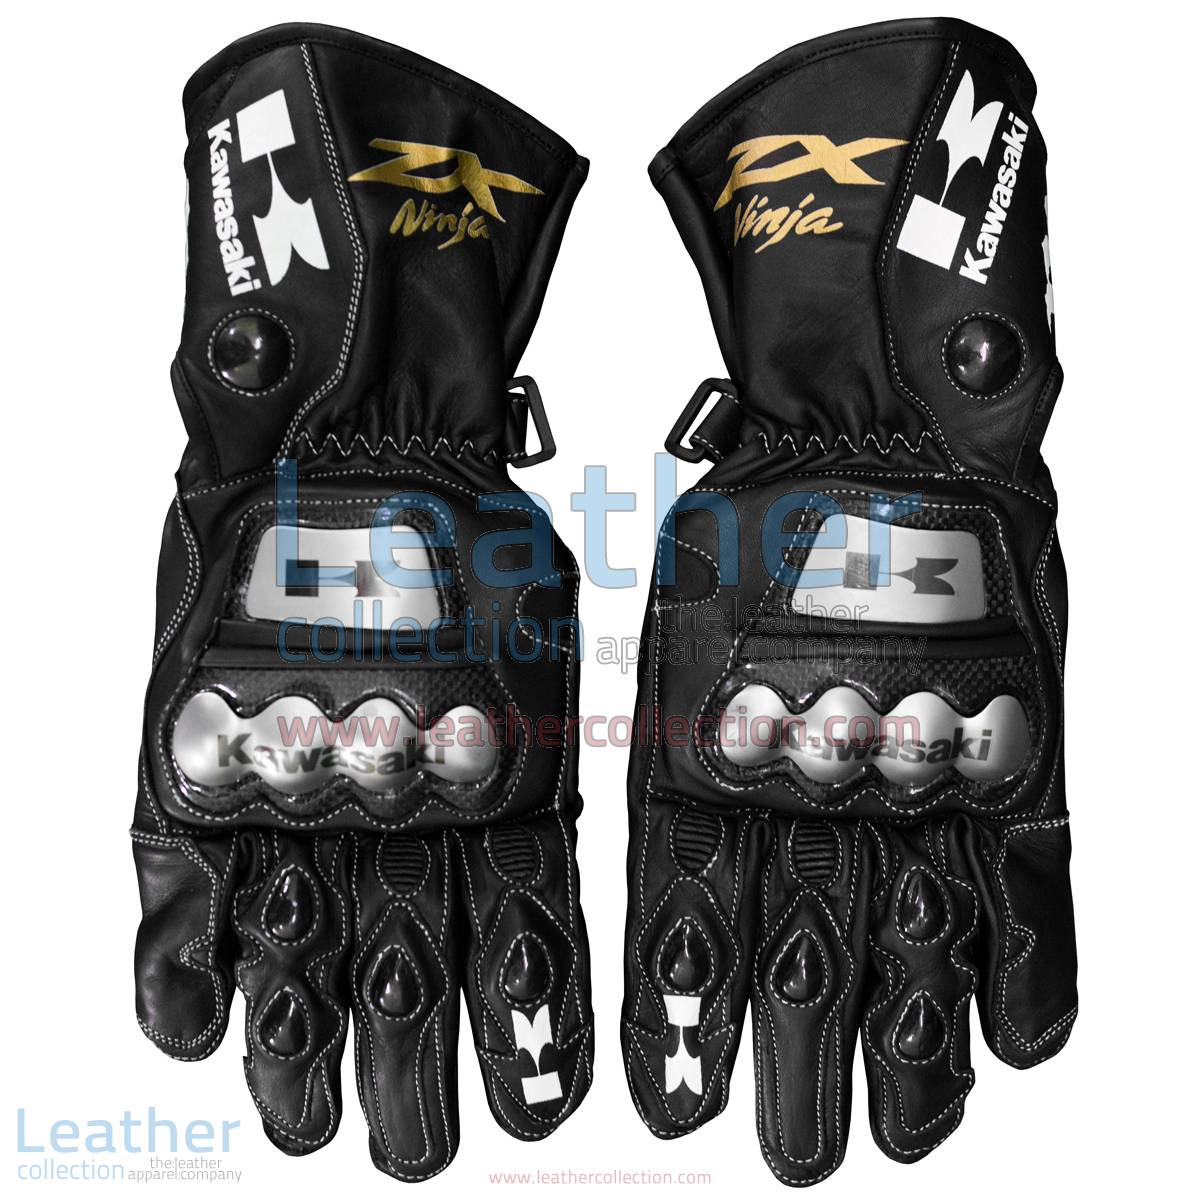 Kawasaki Ninja Racing Gloves | kawasaki ninja gloves